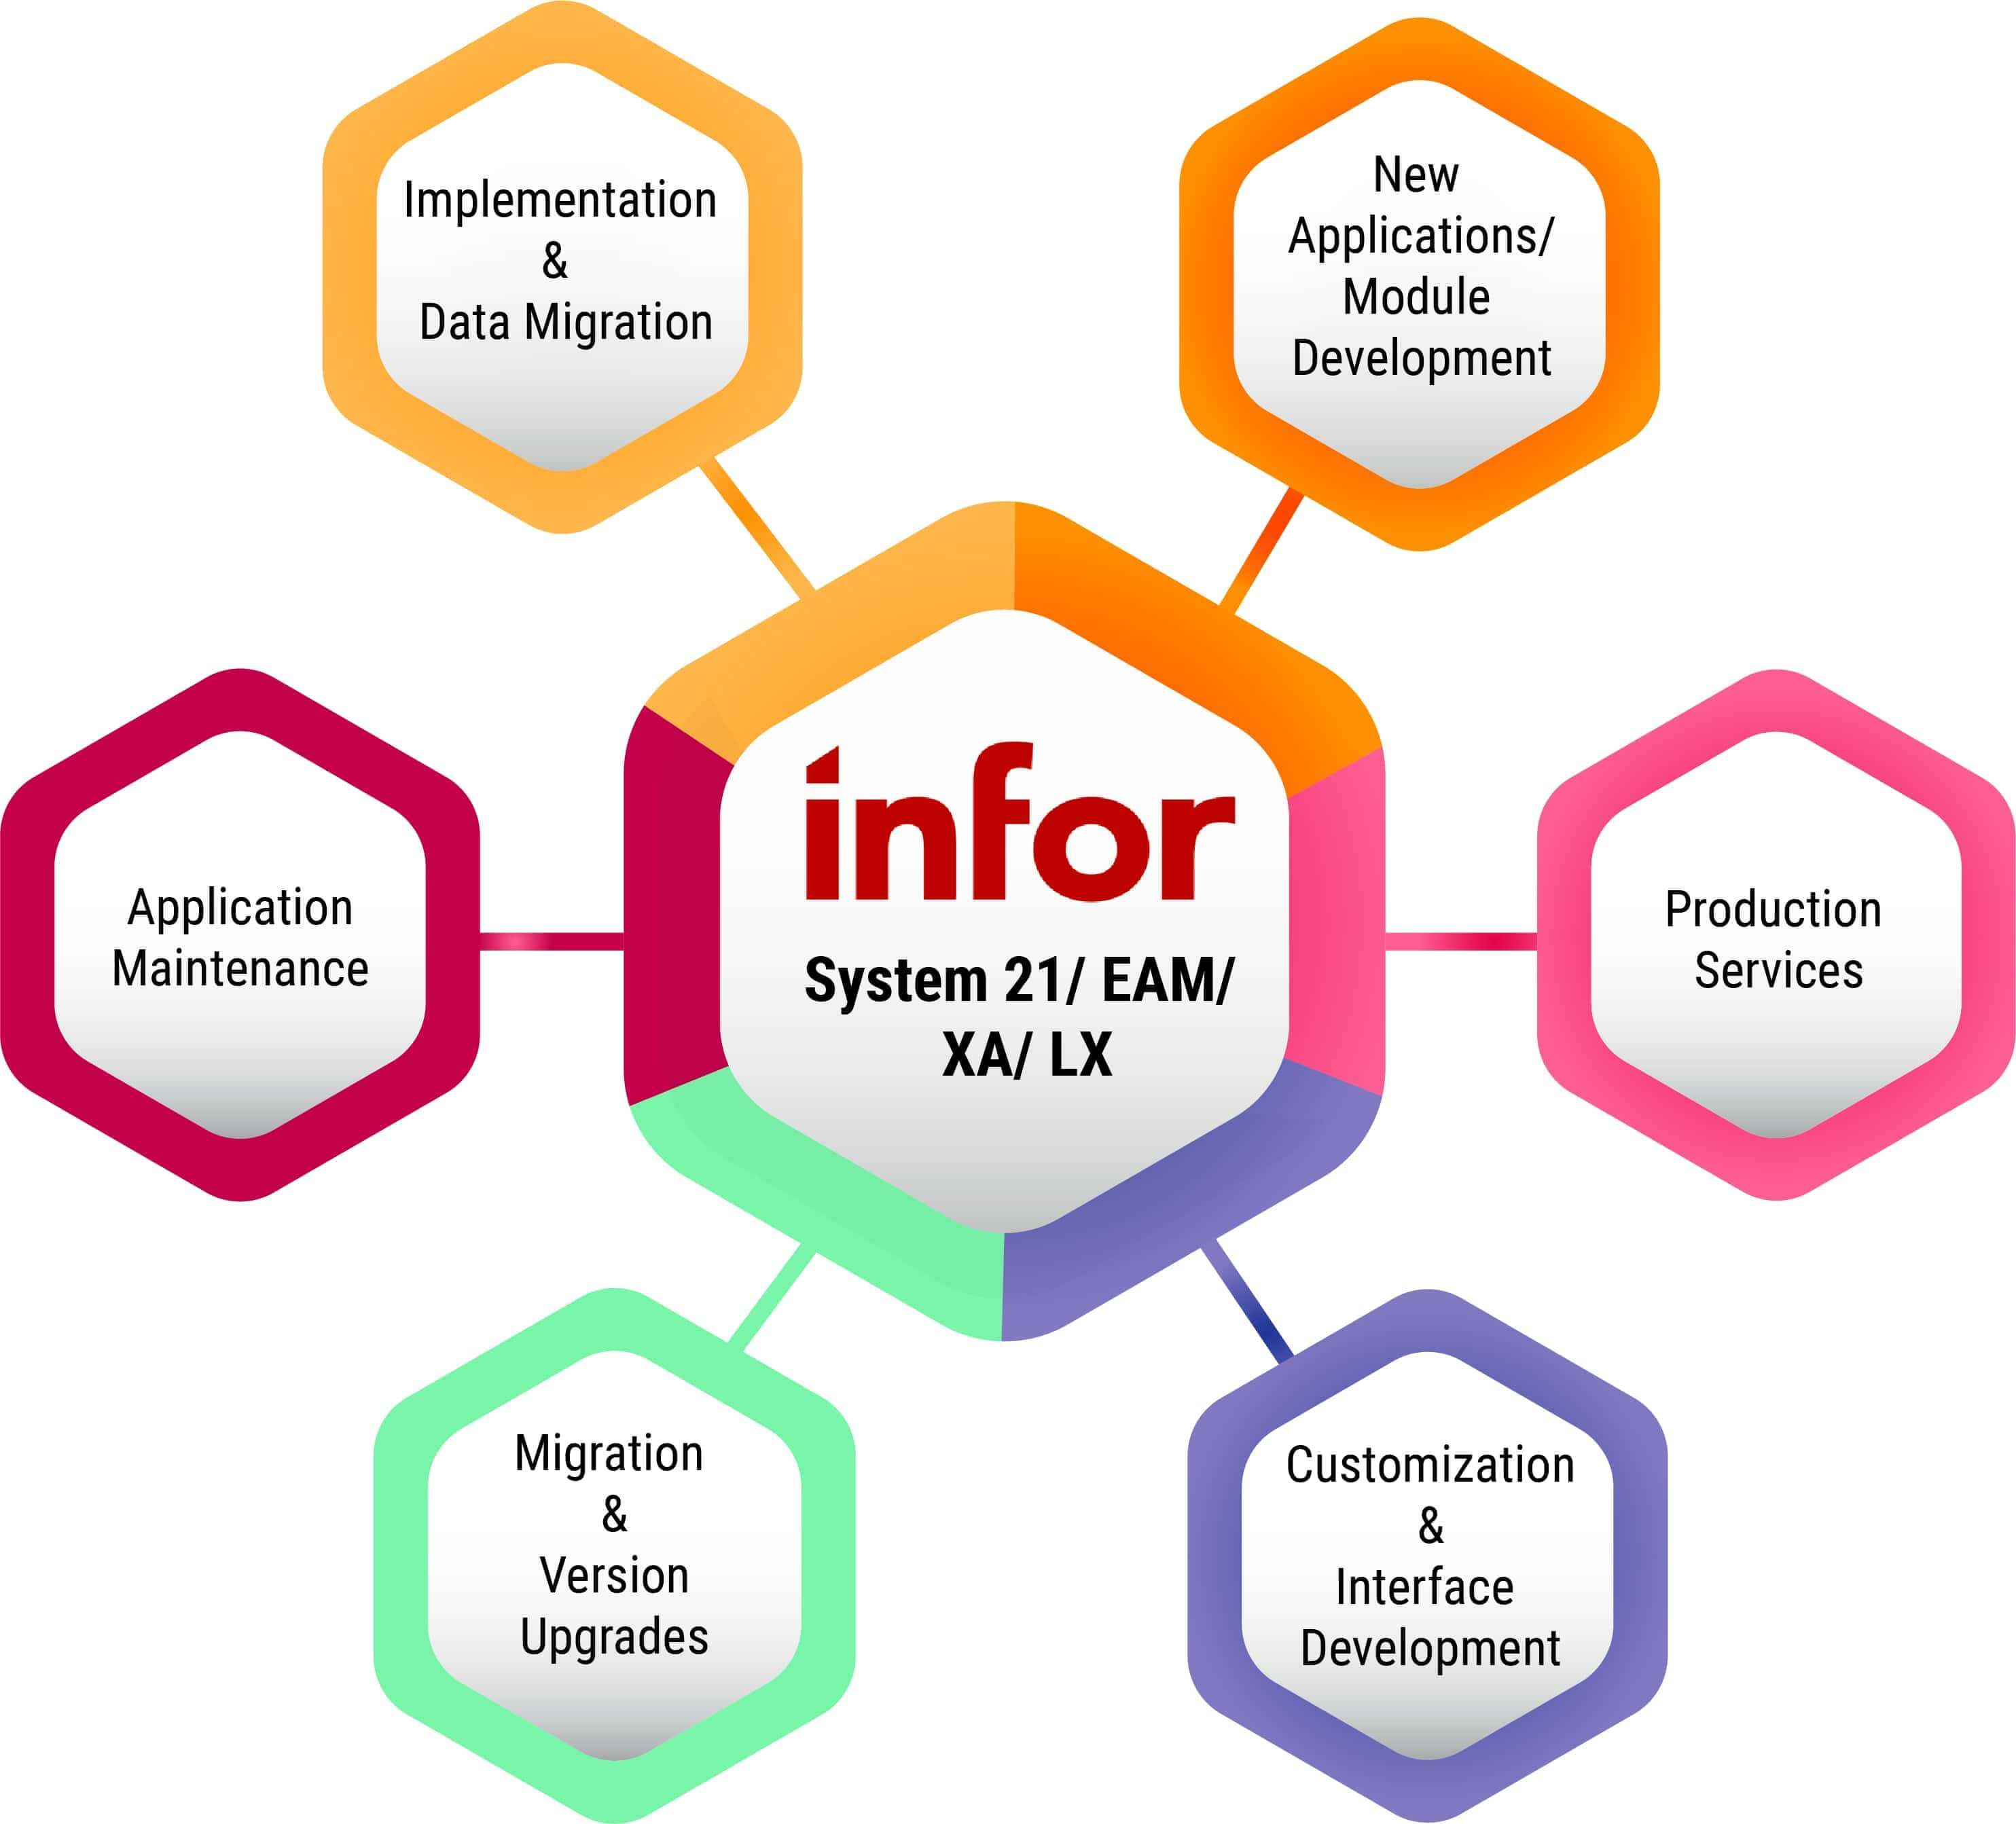 infor solutions